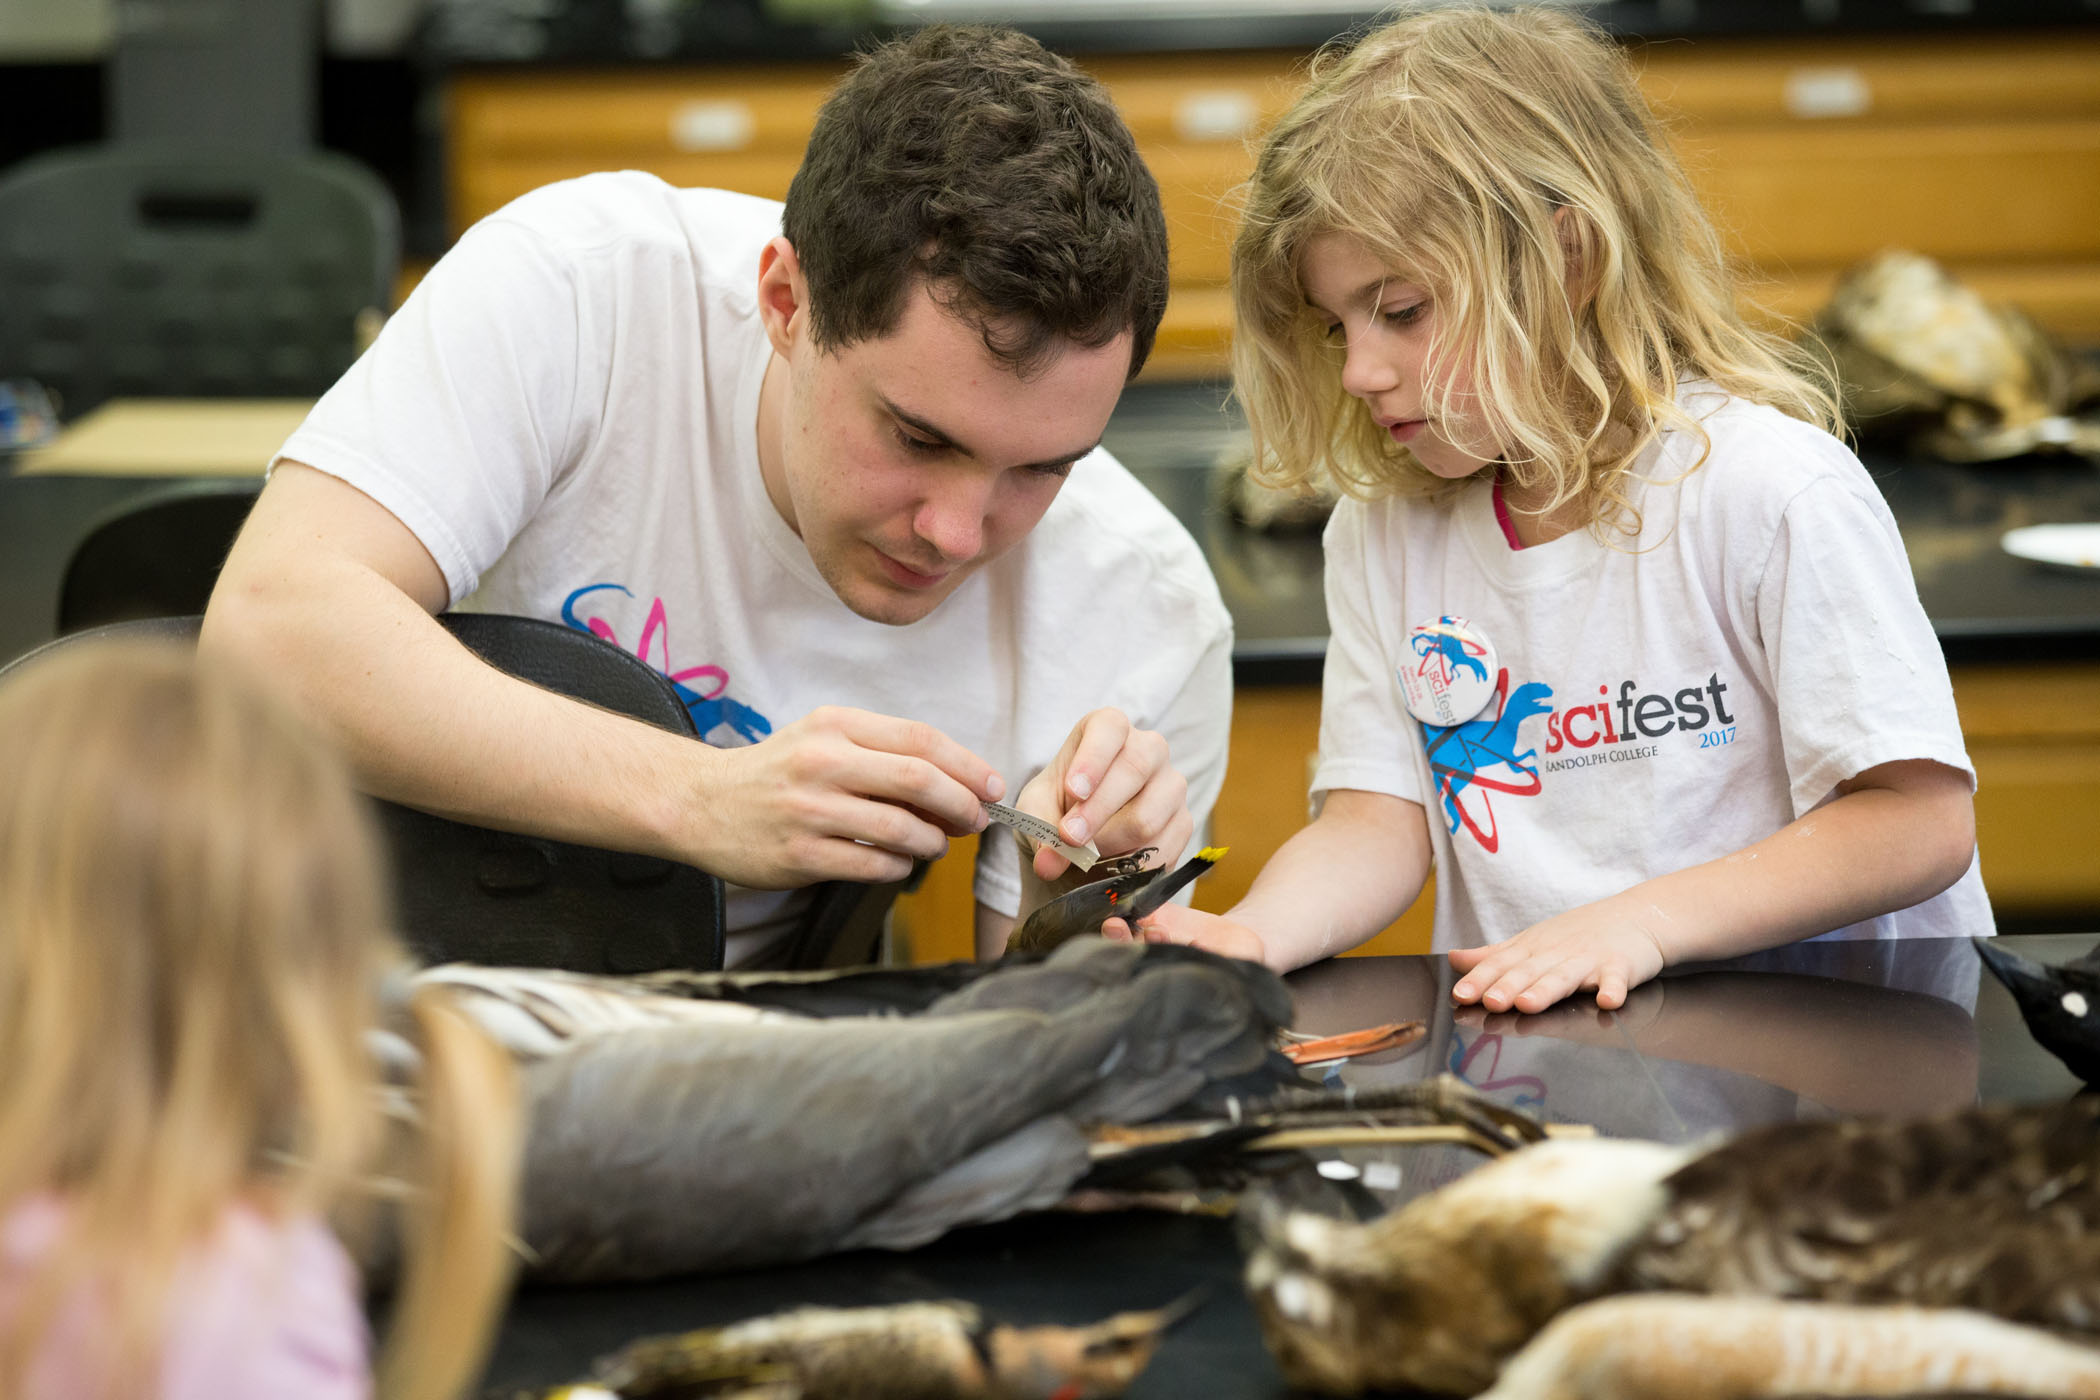 randolph-college-scifest-having-a-pheasant-time-in-the-orinithology-collection.jpg